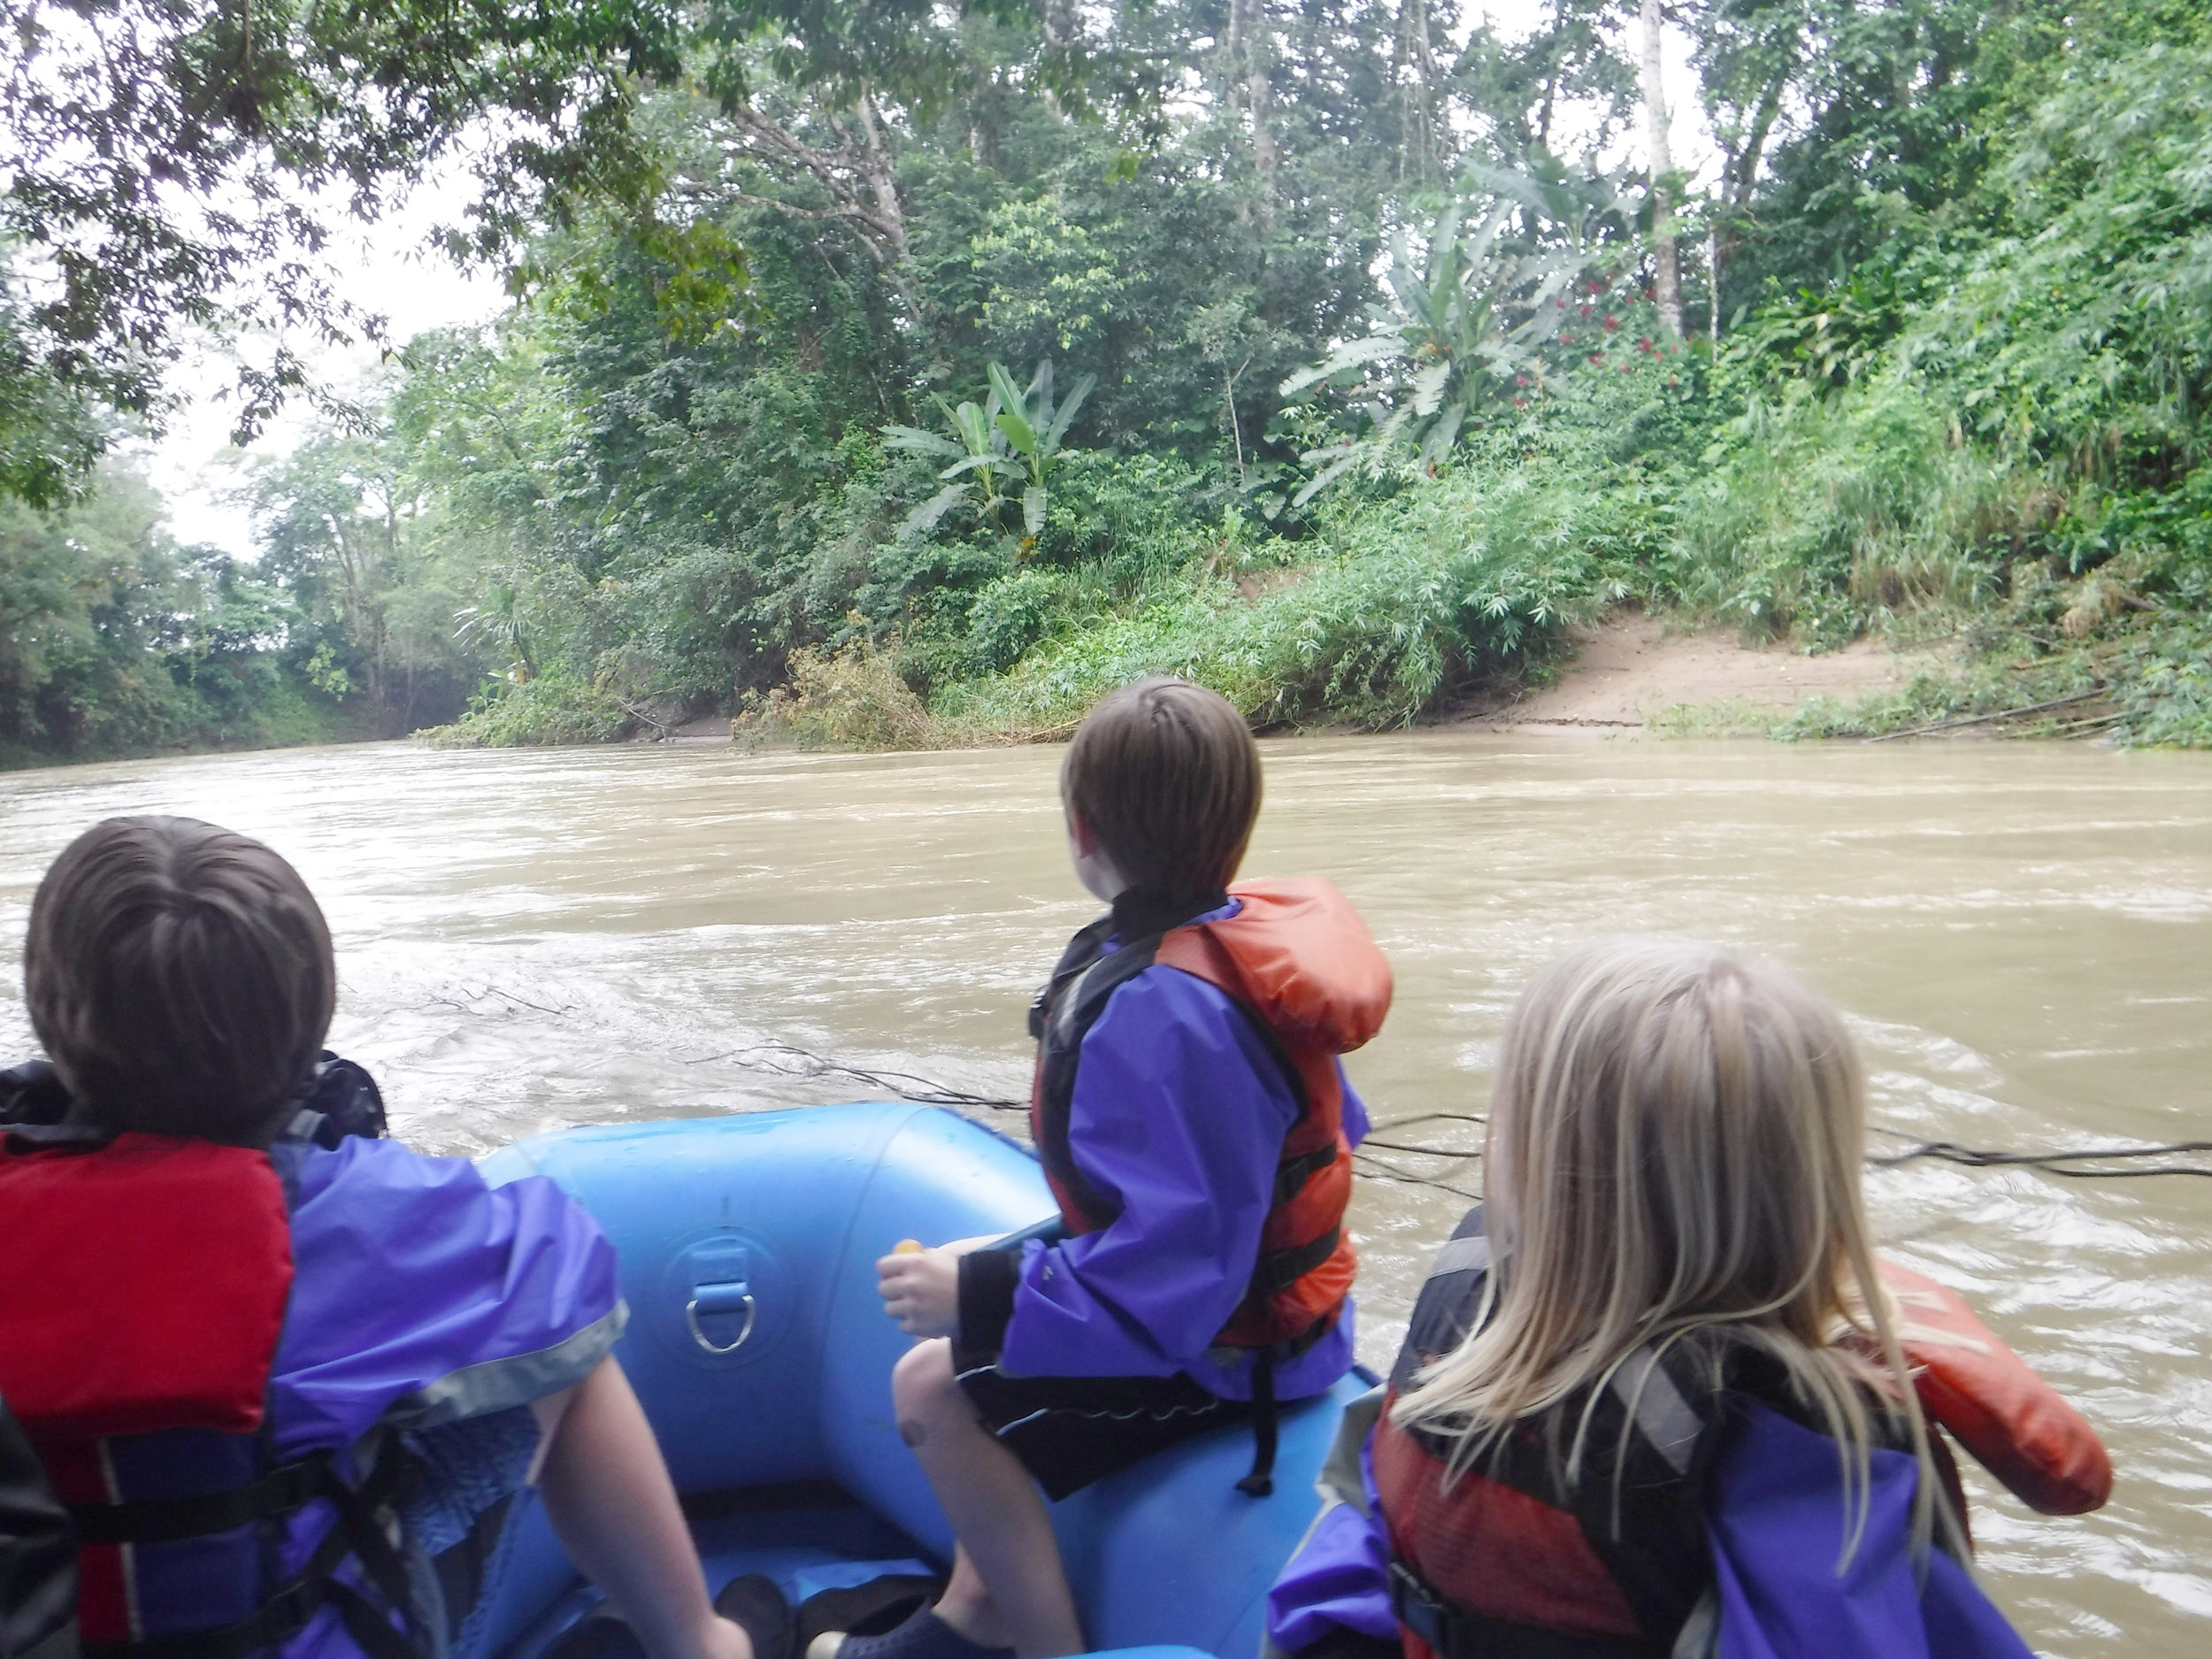 There are rafting adventures for all levels of adventurers! We saw TONS OF monkeys, sloths, caimans and a Jesus Christ Lizard.